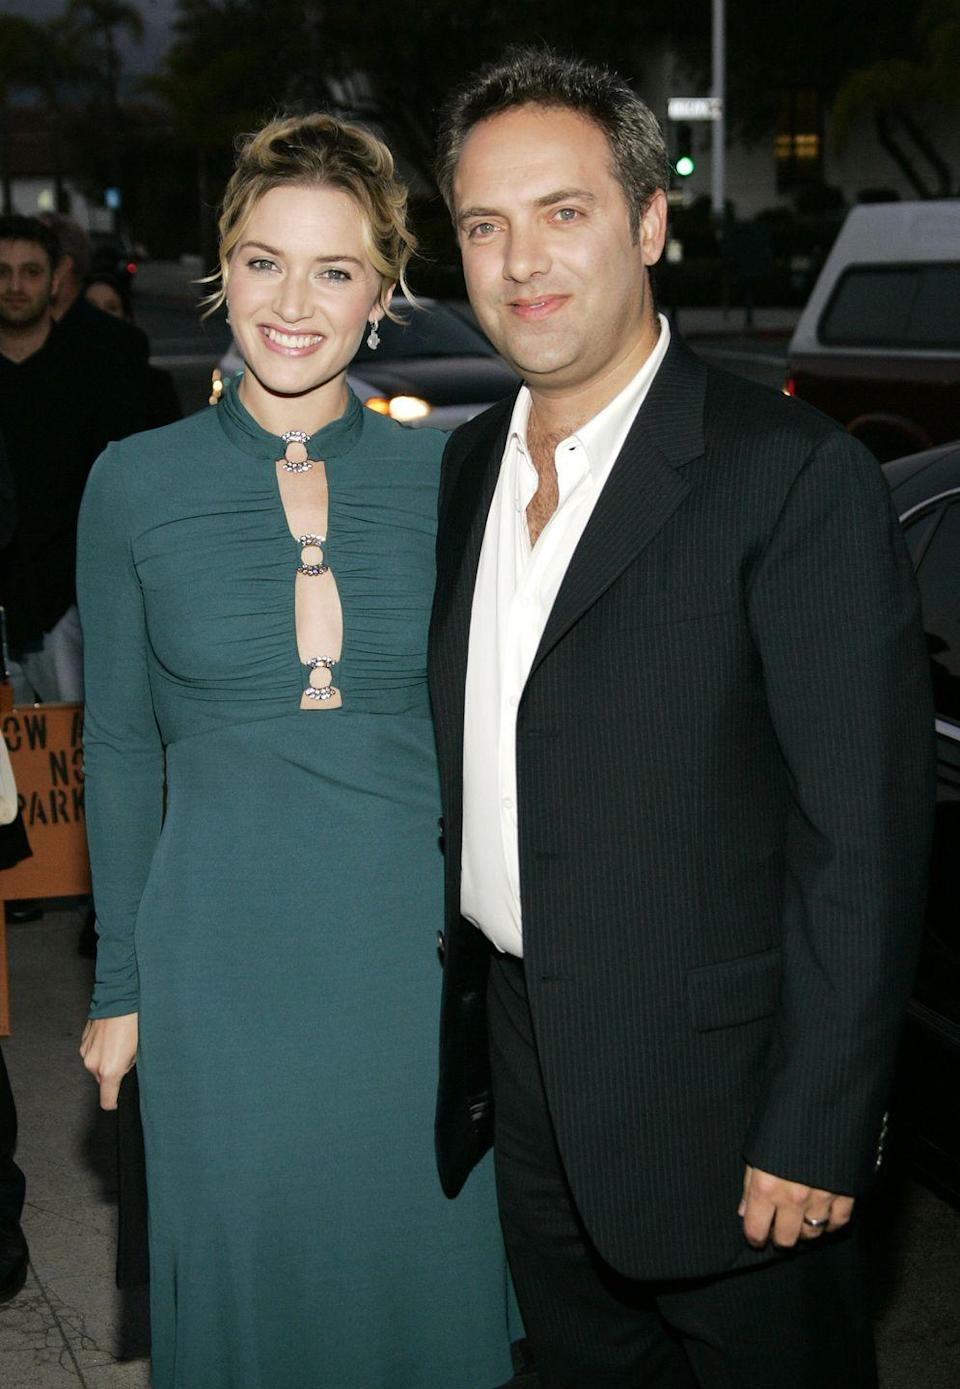 """<p>Winslet was married to director Jim Threapleton in her early twenties and then Mendes (pictured) from 2003 until 2010. When asked about her two divorces in an interview for <em><a href=""""http://www.wsj.com/articles/kate-winslet-stars-in-the-highly-anticipated-film-steve-jobs-1443621106"""" rel=""""nofollow noopener"""" target=""""_blank"""" data-ylk=""""slk:WSJ Magazine"""" class=""""link rapid-noclick-resp"""">WSJ Magazine</a></em>, she responded: """"I know lots of people who are not in the public eye who have gone through several marriages...And f**k me, it hasn't been easy, you know."""" Tell 'em, Kate.</p>"""